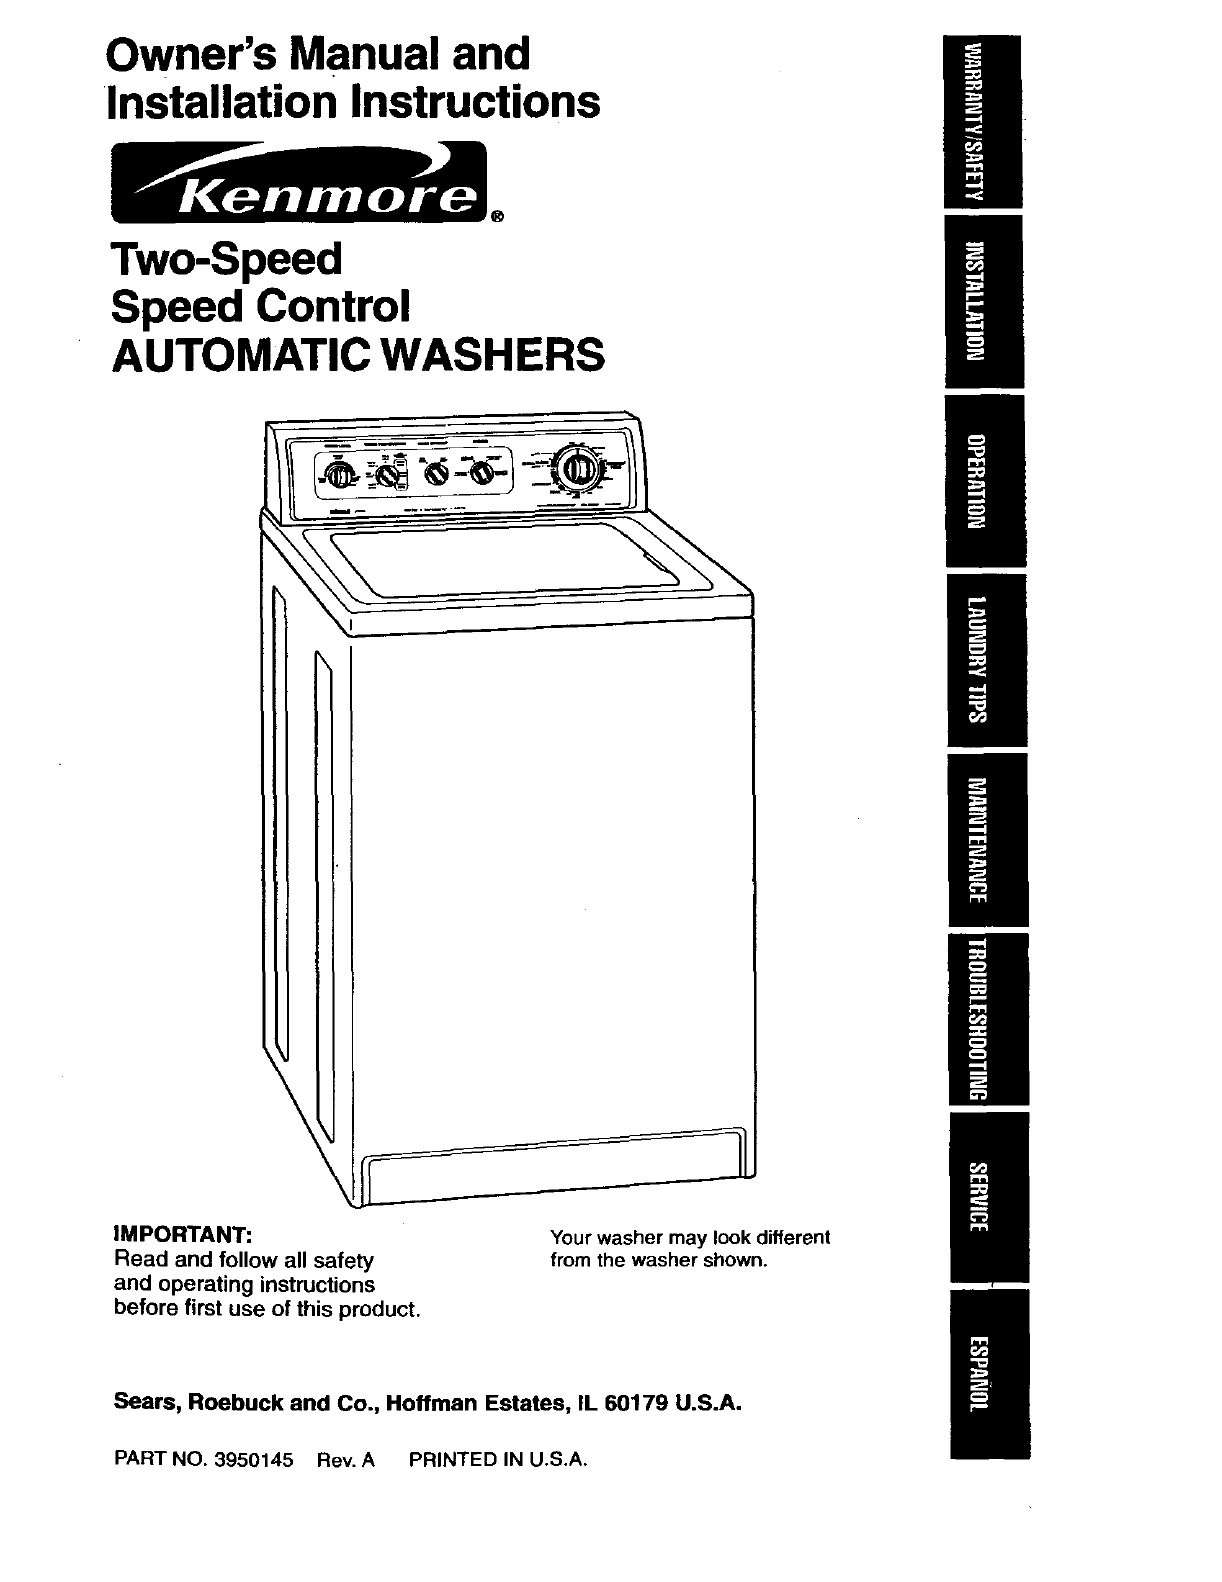 d64627ae e480 4fb9 835f b84d8b62023f bg1 kenmore washer 110 29882890 user guide manualsonline com Kenmore 110 Washer Diagram at soozxer.org